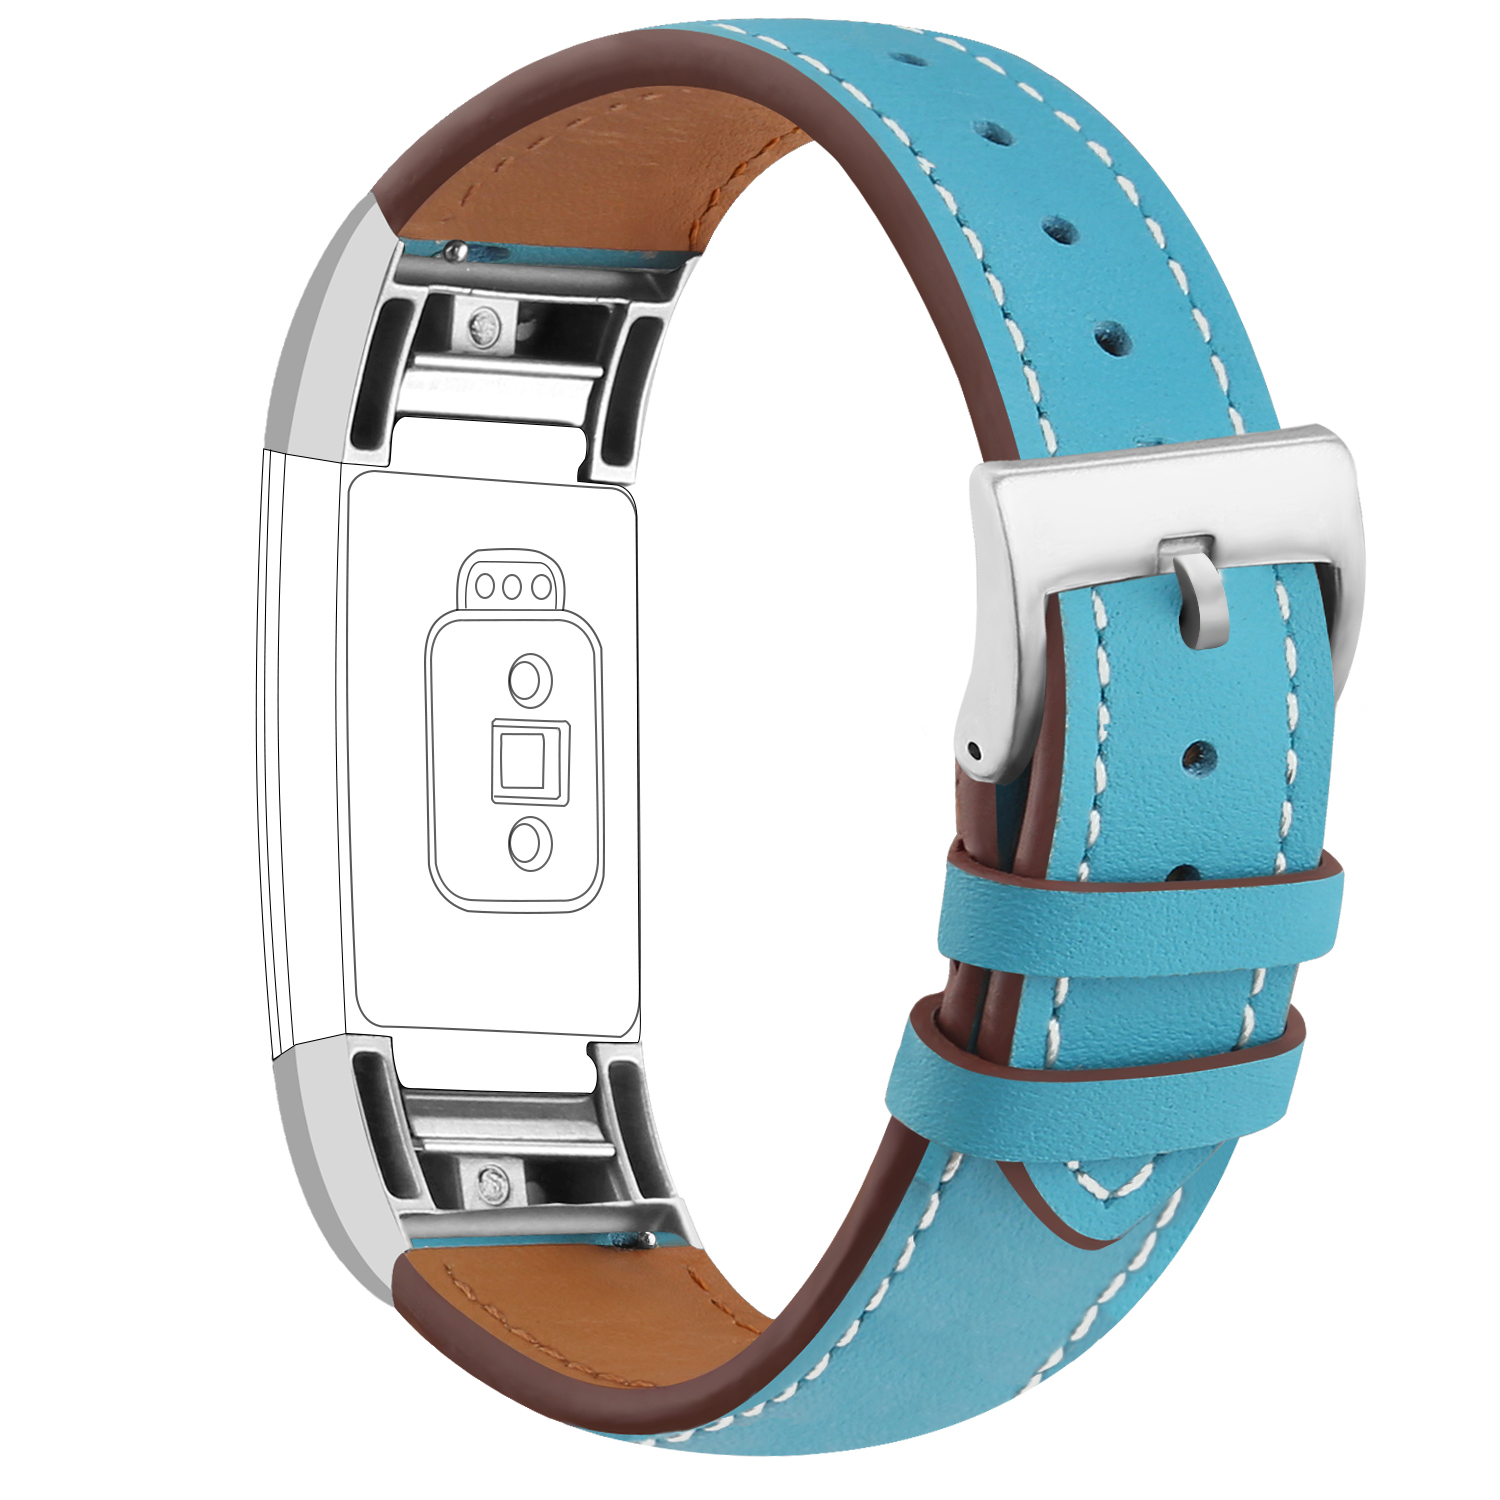 iGK For Fitbit Charge 2 Bands Genuine Leather Replacement Wrist Bands Metal Connectors for Fitbit Charge 2 (Blue)